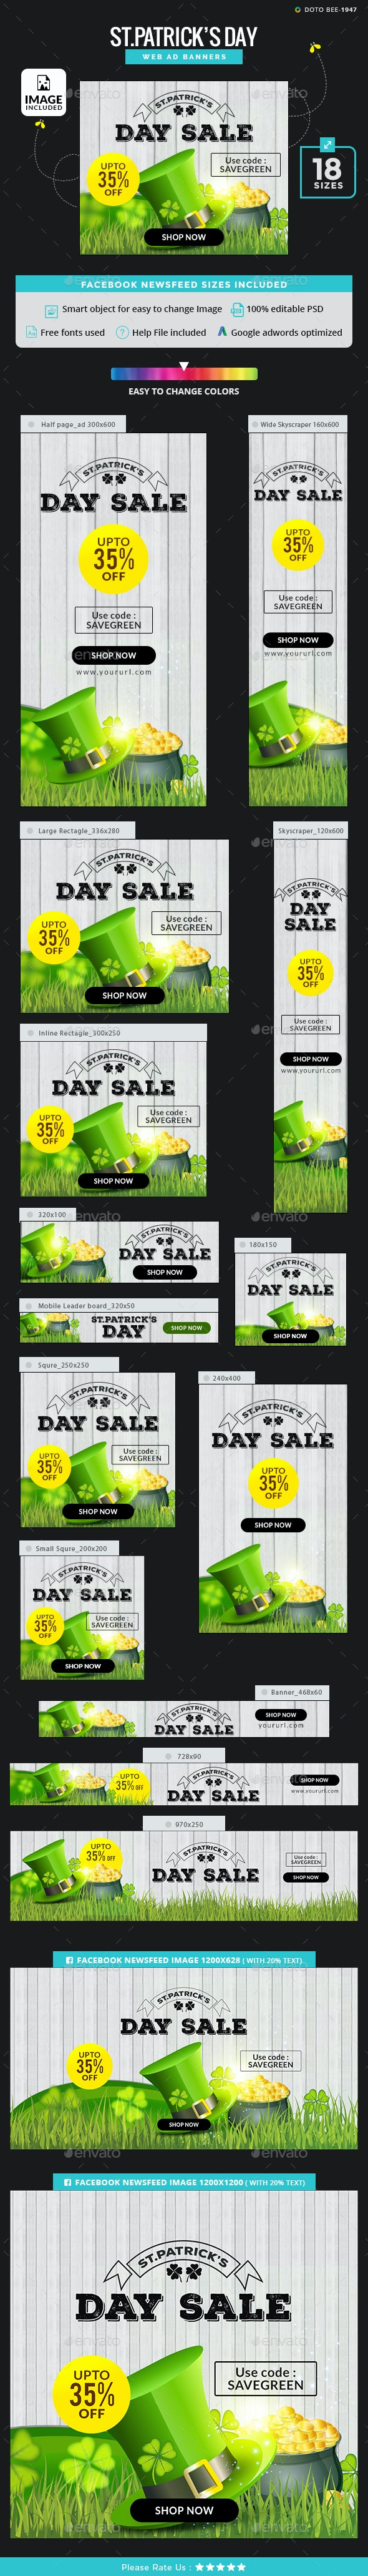 St.Patrick's Day Banners - Images Included - Banners & Ads Web Elements